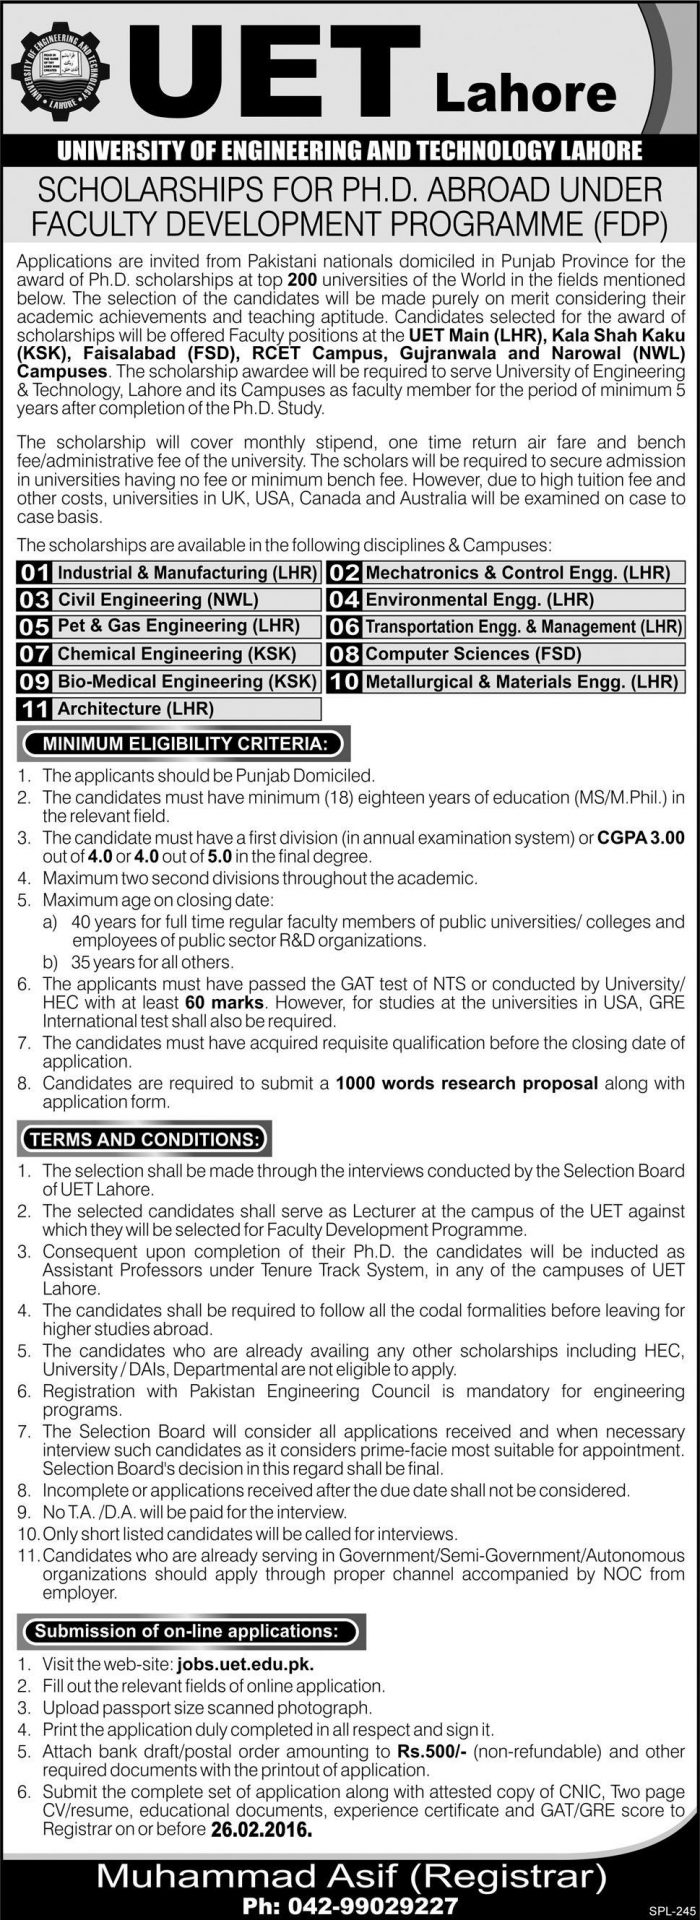 UET Lahore Scholarships For PhD Abroad 2018 Form Apply Online Last Date